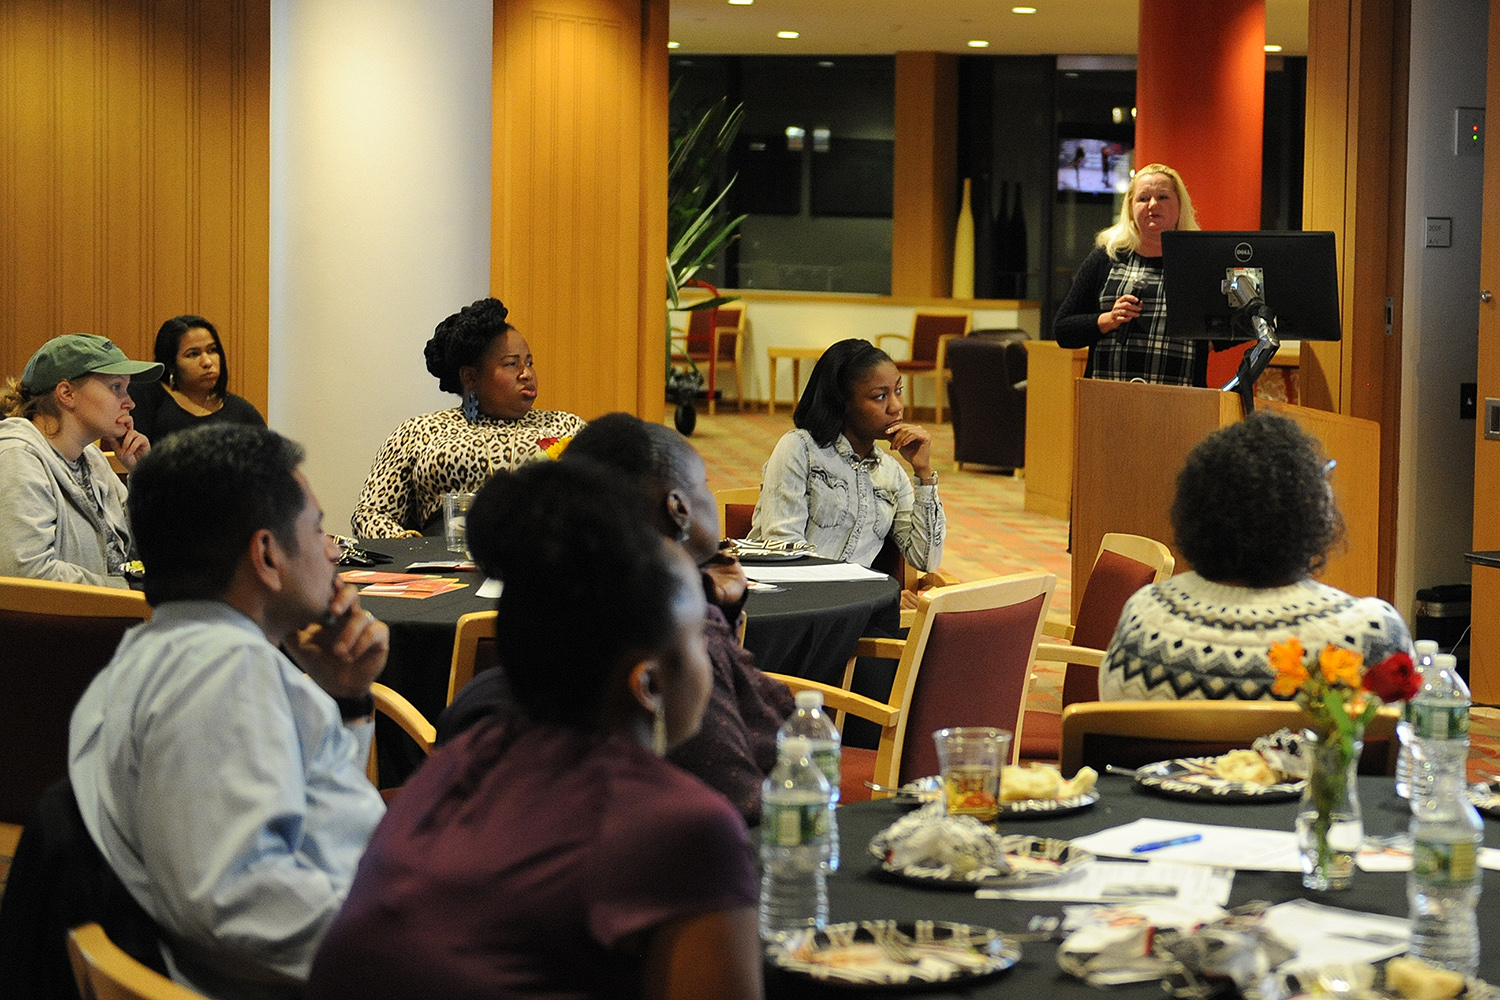 Wesleyan, in conjunction with the New England Sickle Cell Institute and the Citizens for Quality Sickle Cell Care hosted a benefit dinner for sickle cell disease awareness and research on Nov. 10 in the Daniel Family Commons.